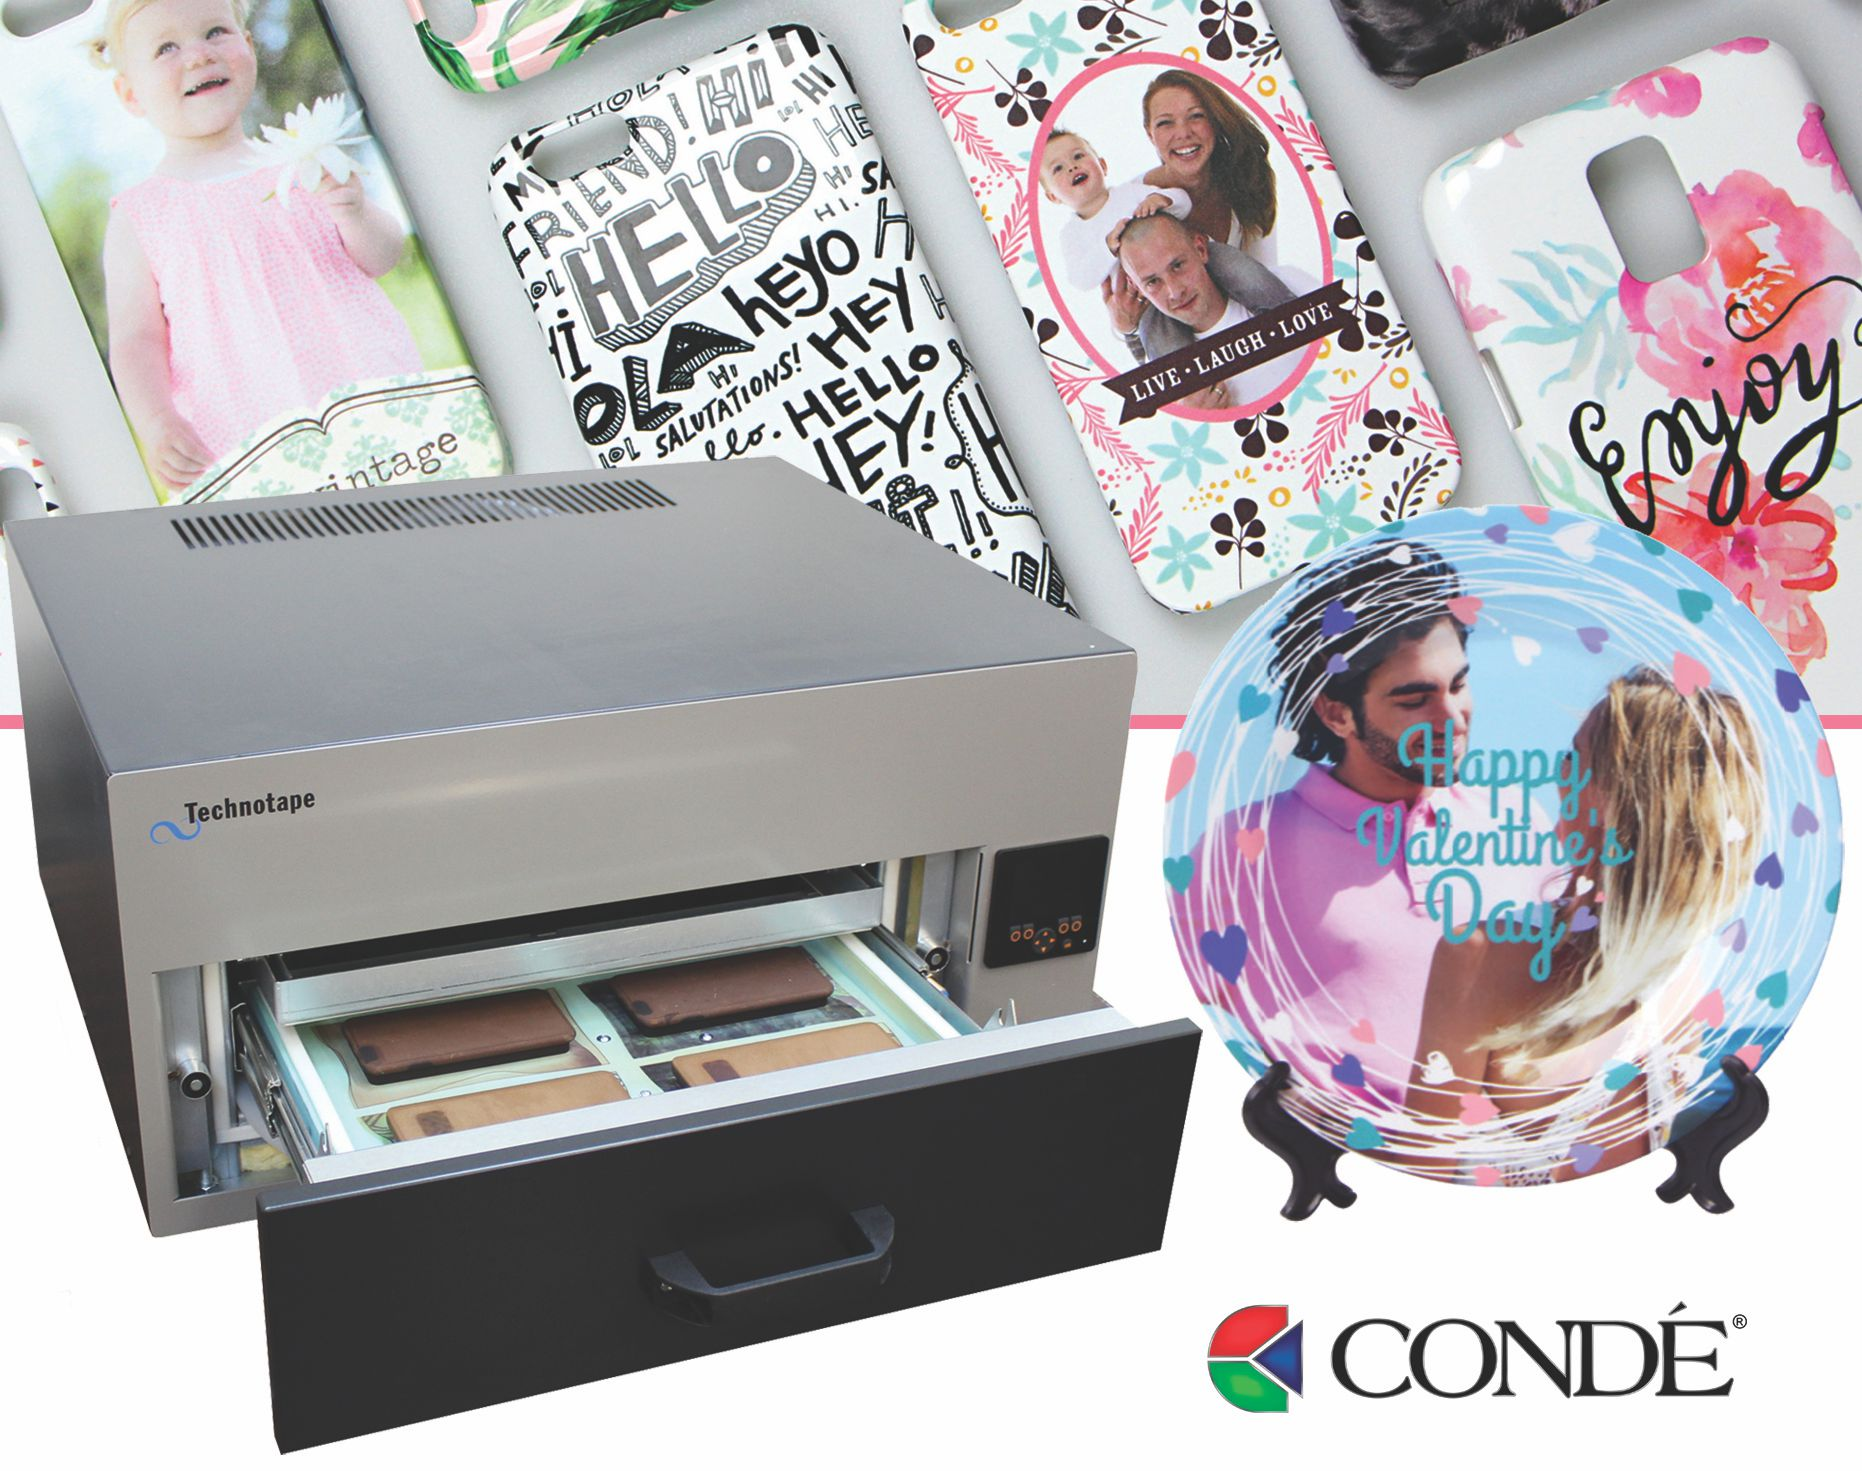 Condé Introduces Technotape 3D Vacuum Oven for Sublimation Transfer